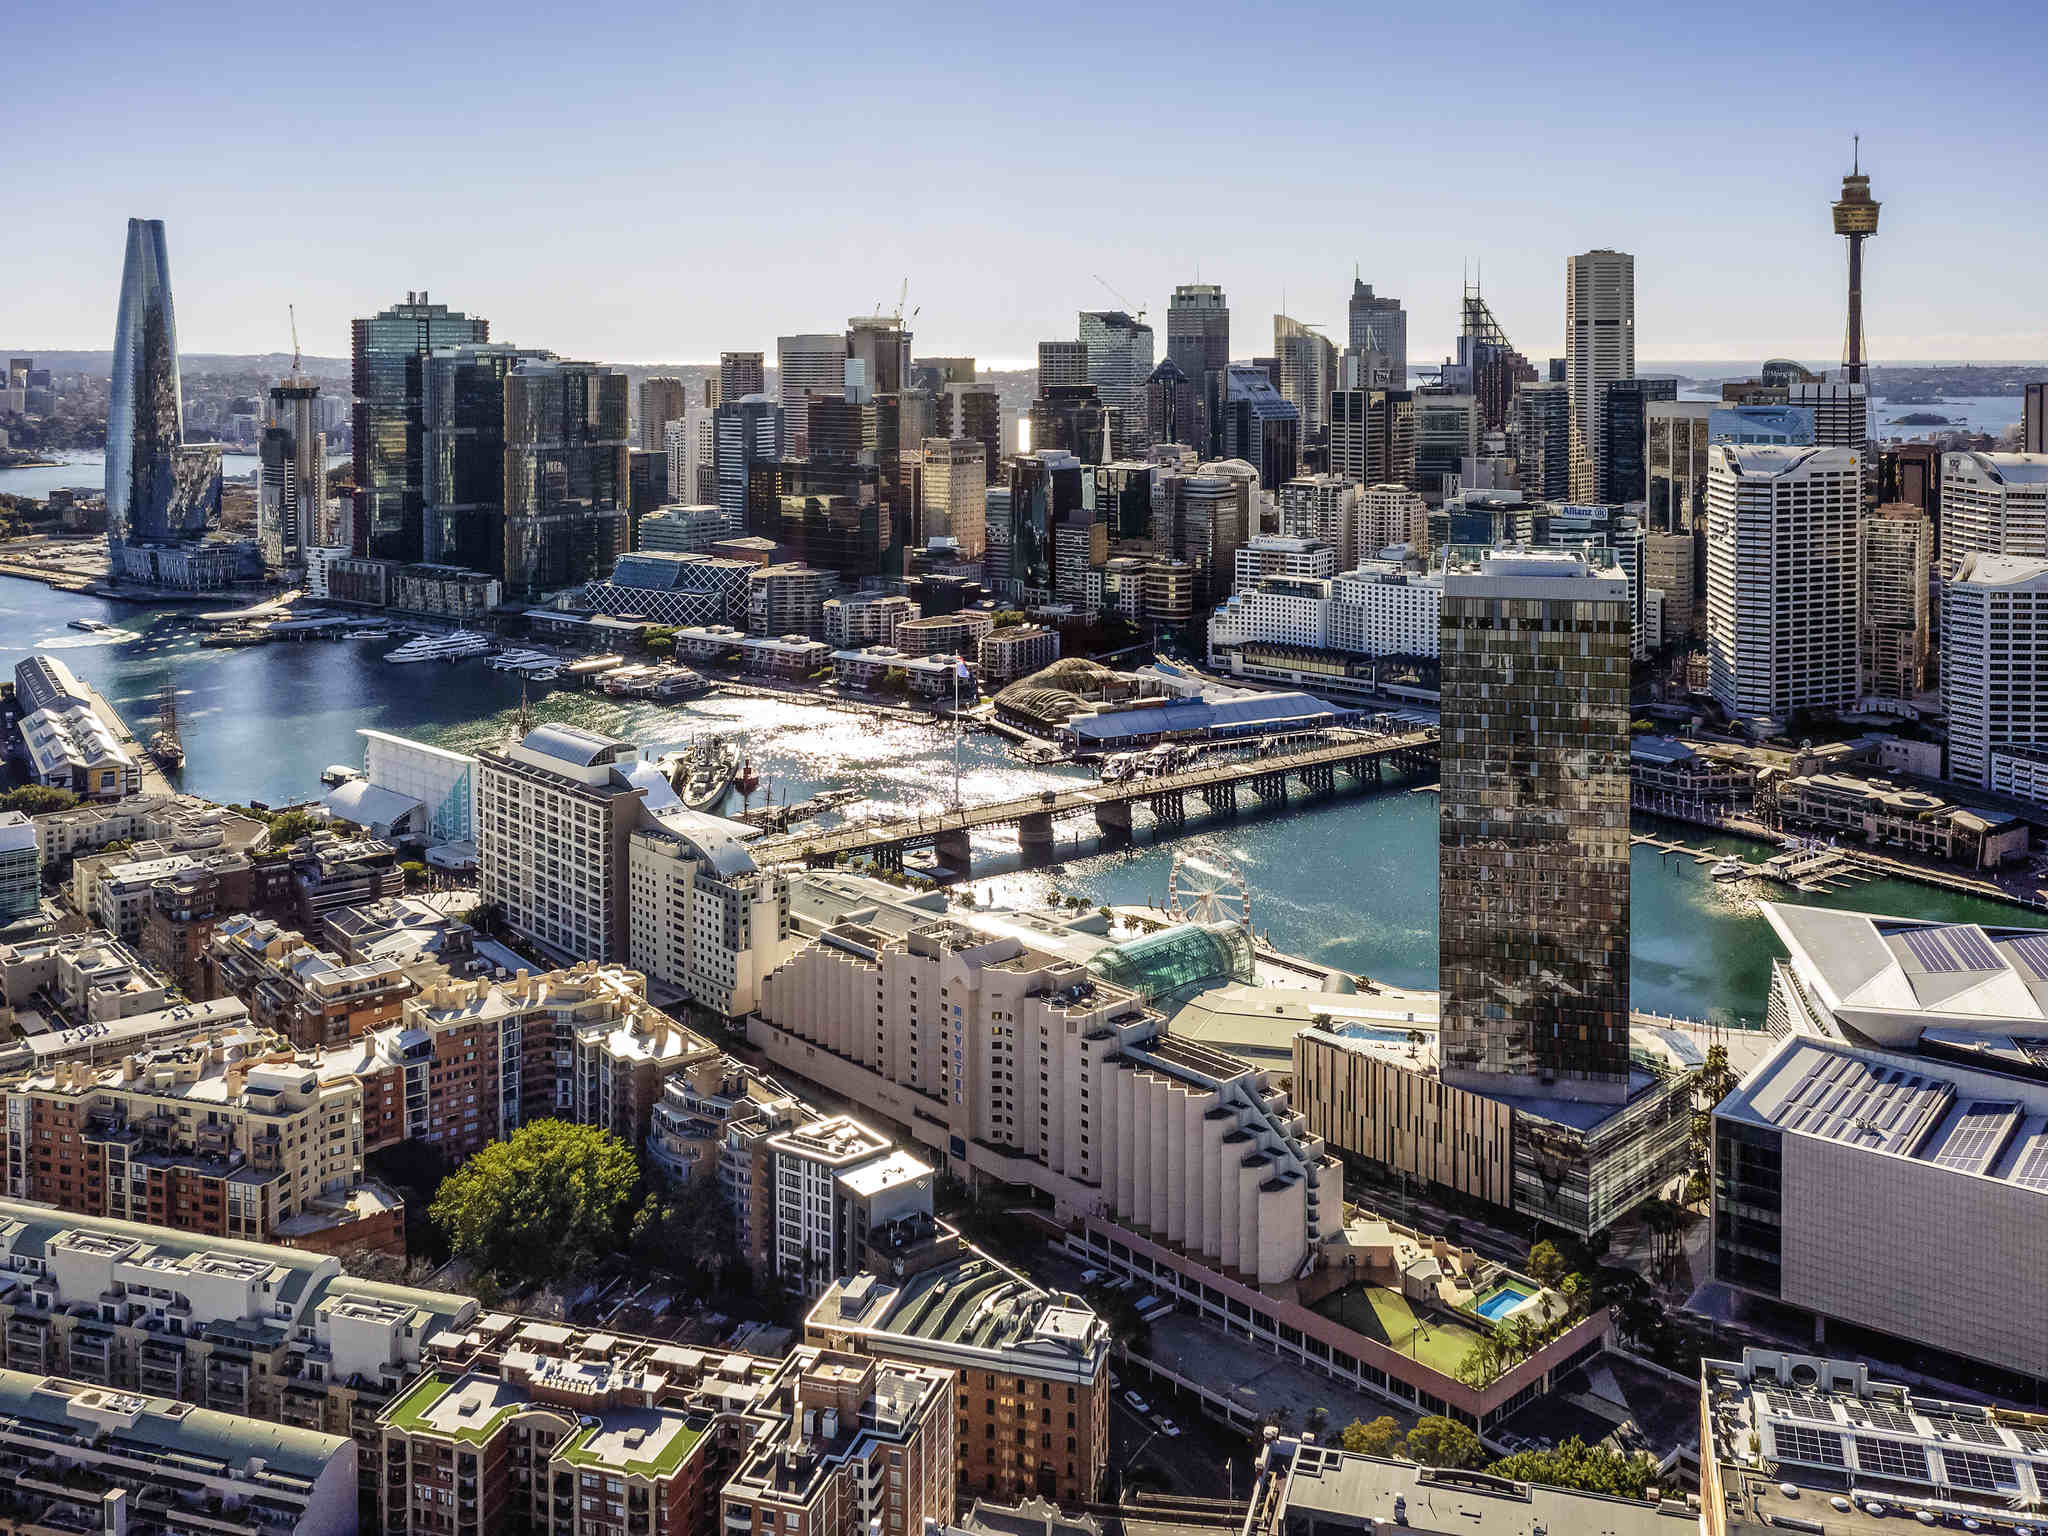 Ovolo 1888 Darling Harbour Boutique Design Hotel in